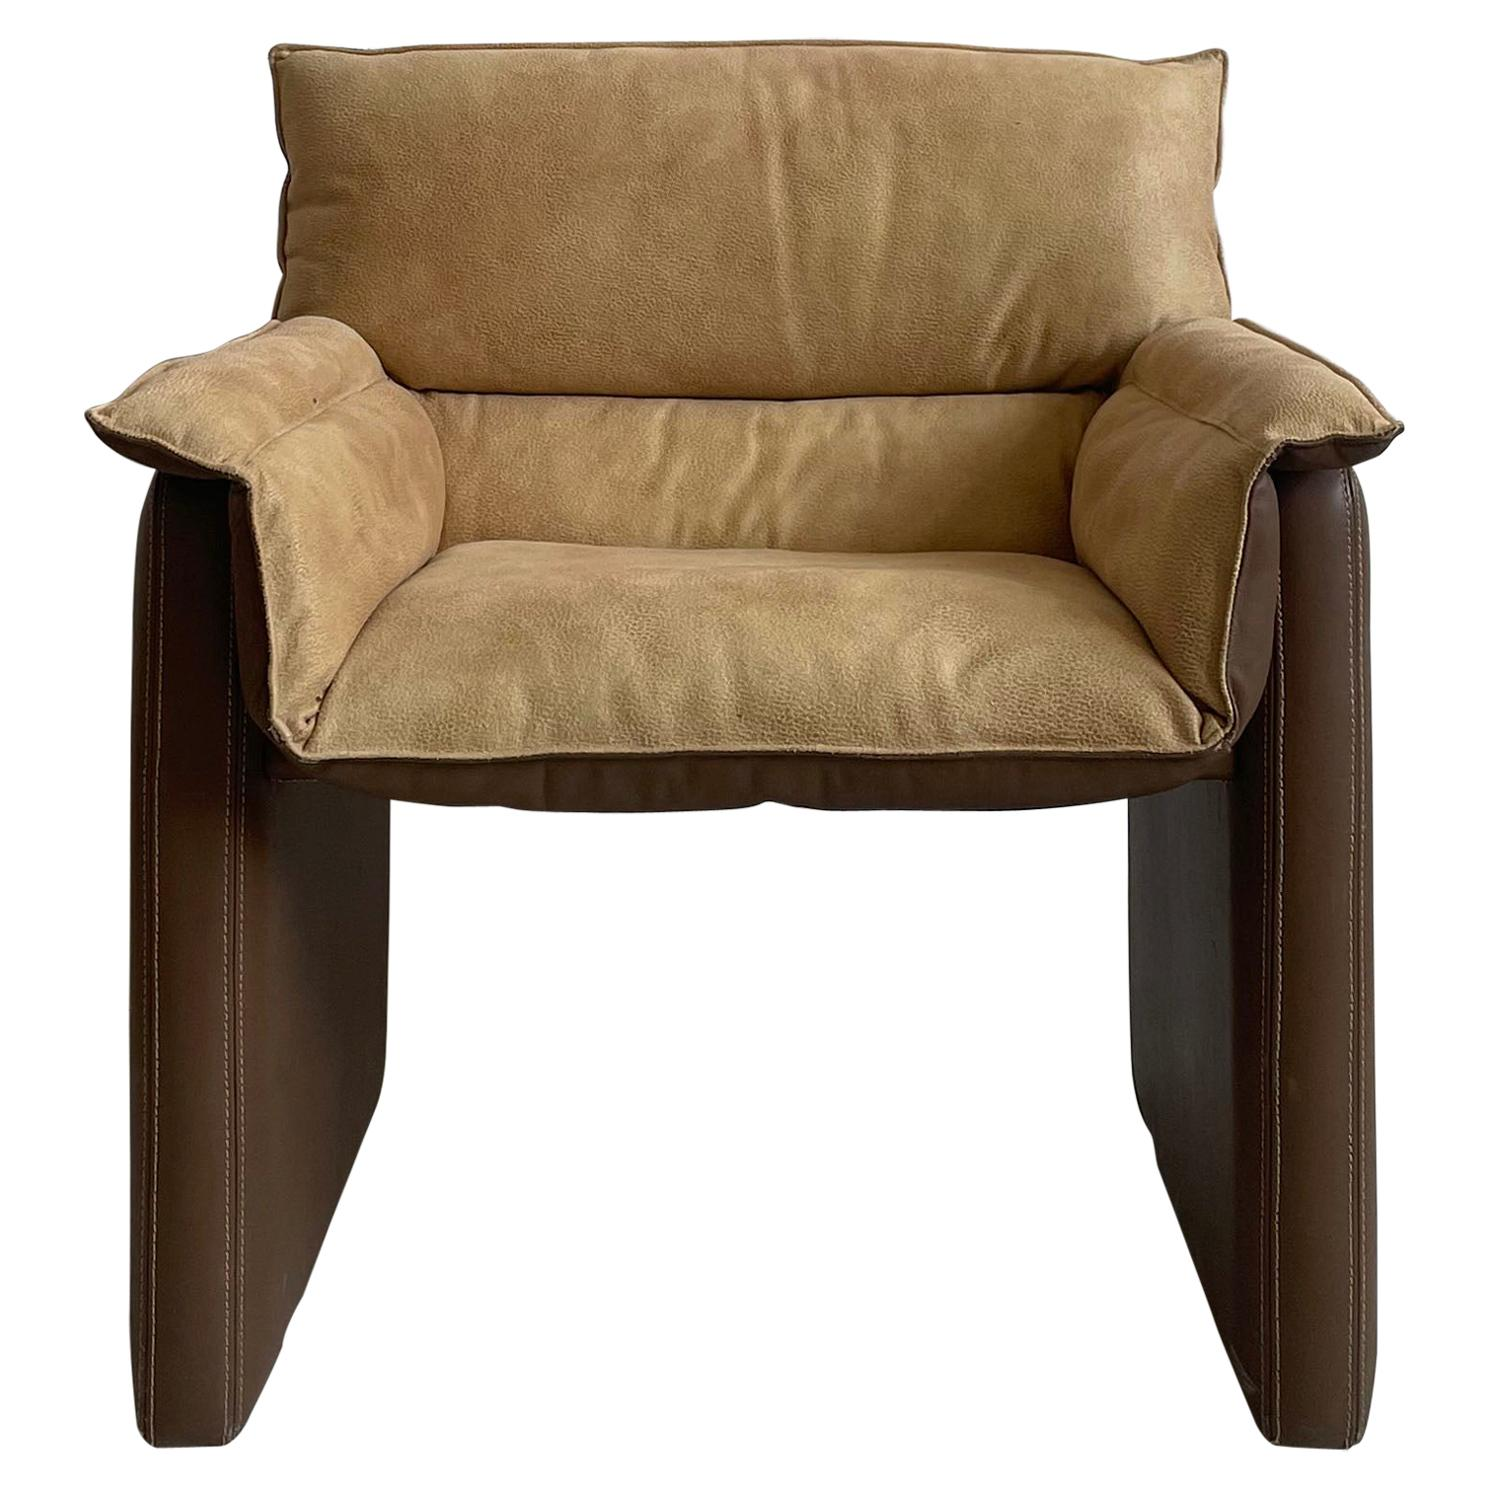 Safari Suede and Leather Dinner Chair, Carlo Bartoli for Rossi di Albizzate, #4